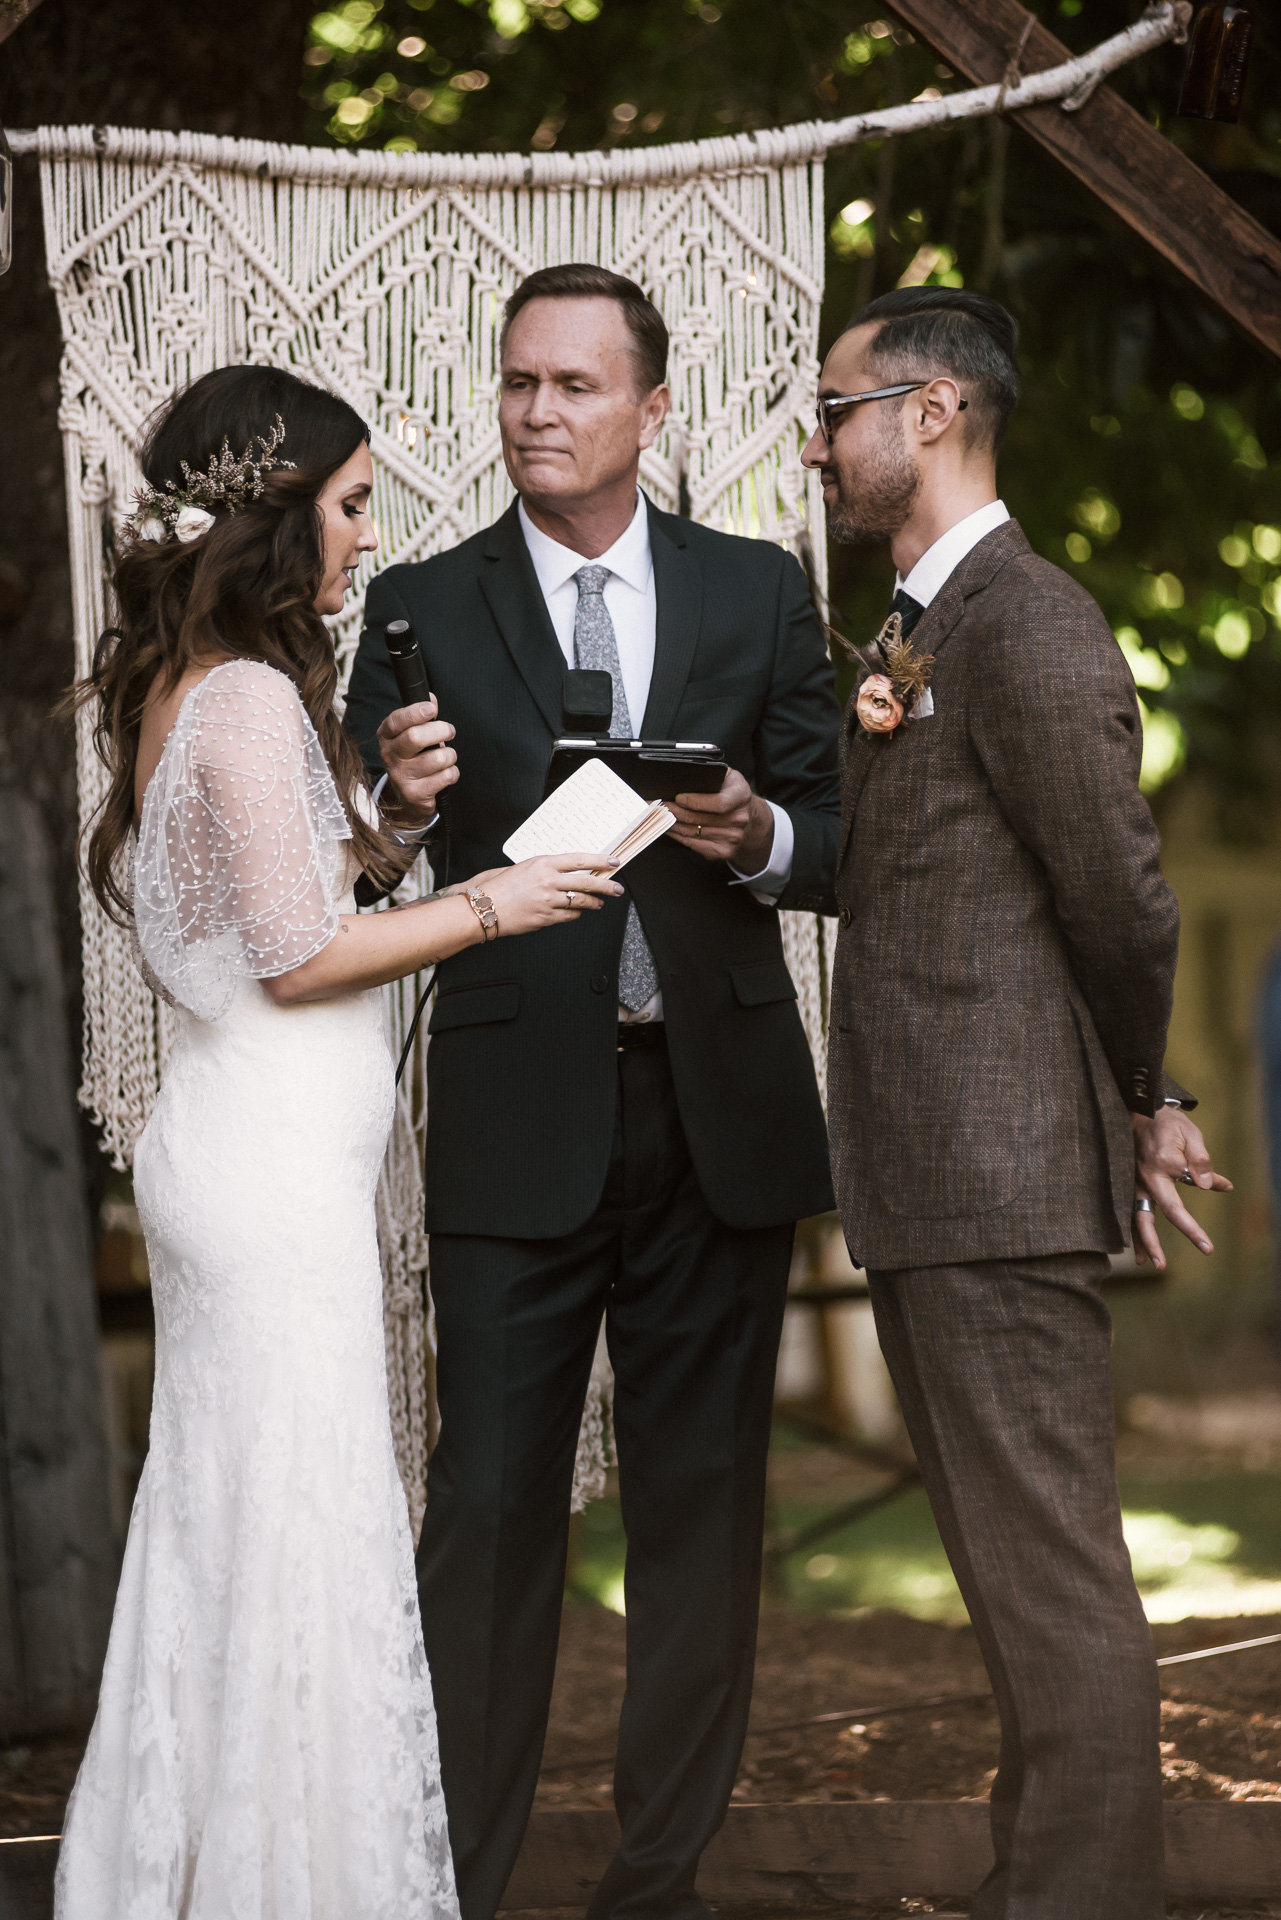 bride reads her vows to the groom shot by wedding photographer at the charming St. George Hotel in Volcano California